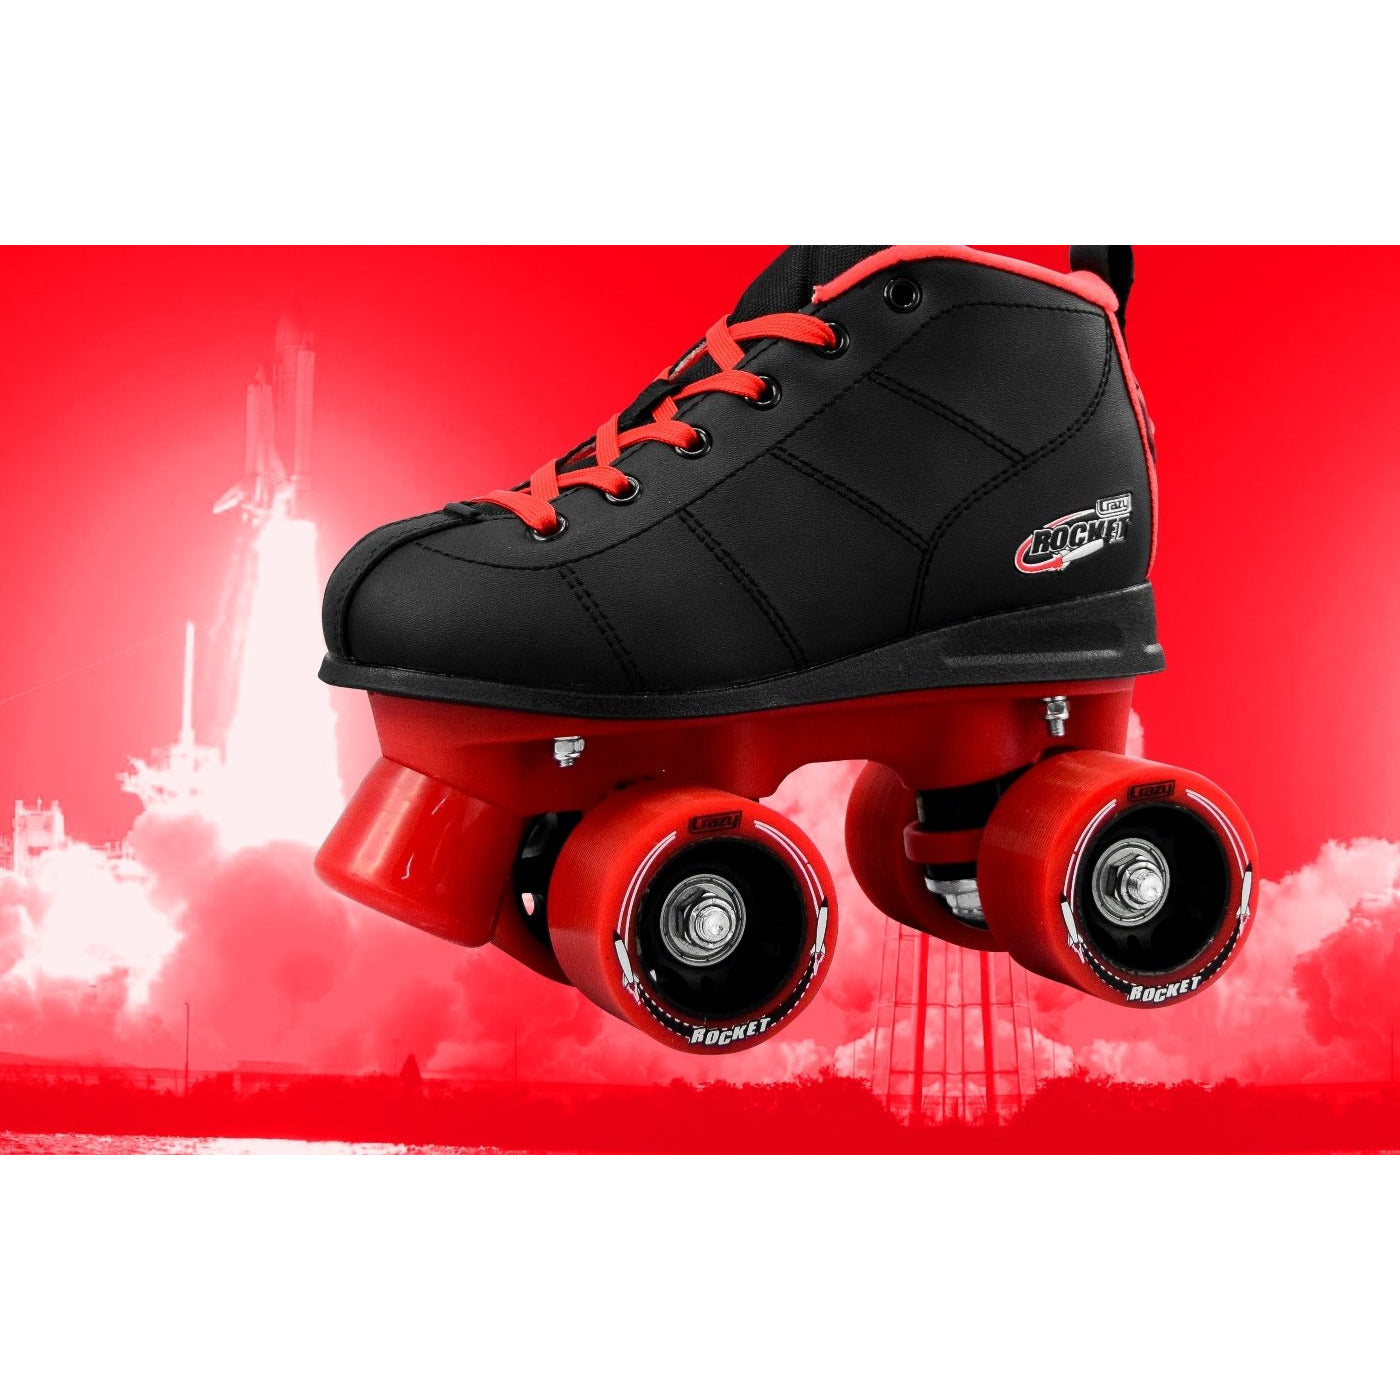 Crazy Skates Rocket Rollerskates Black/Red